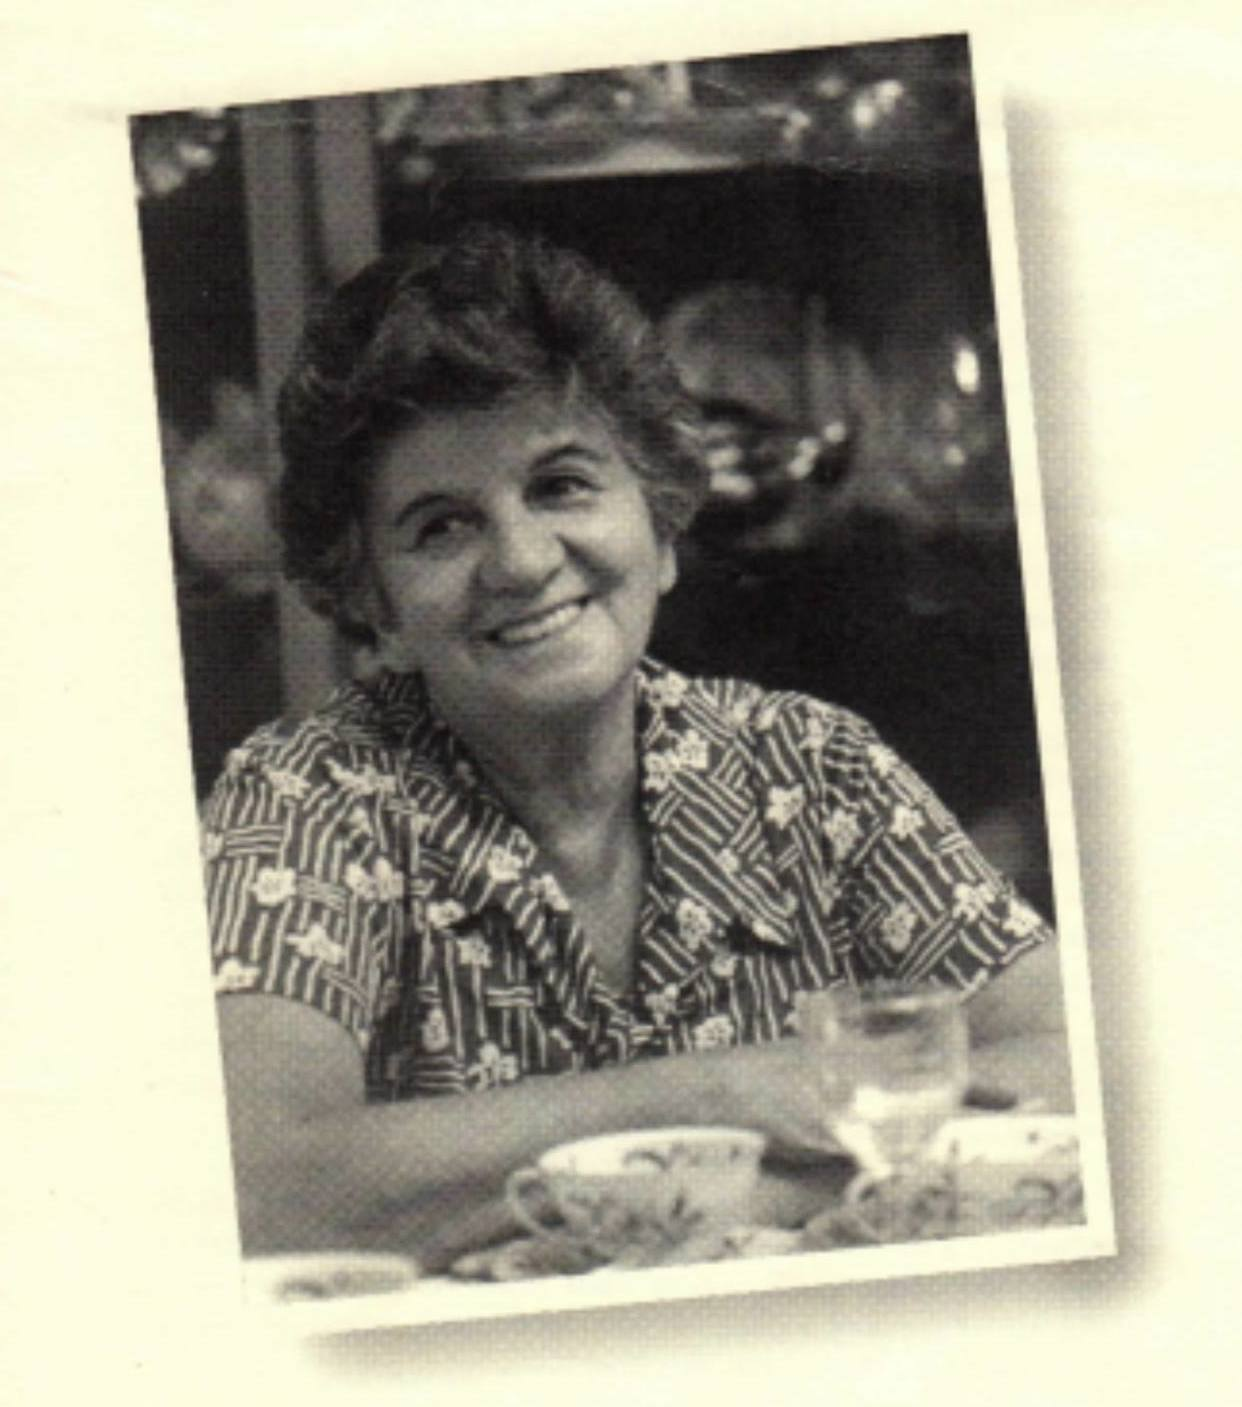 Photo of Ruth N. Shiff